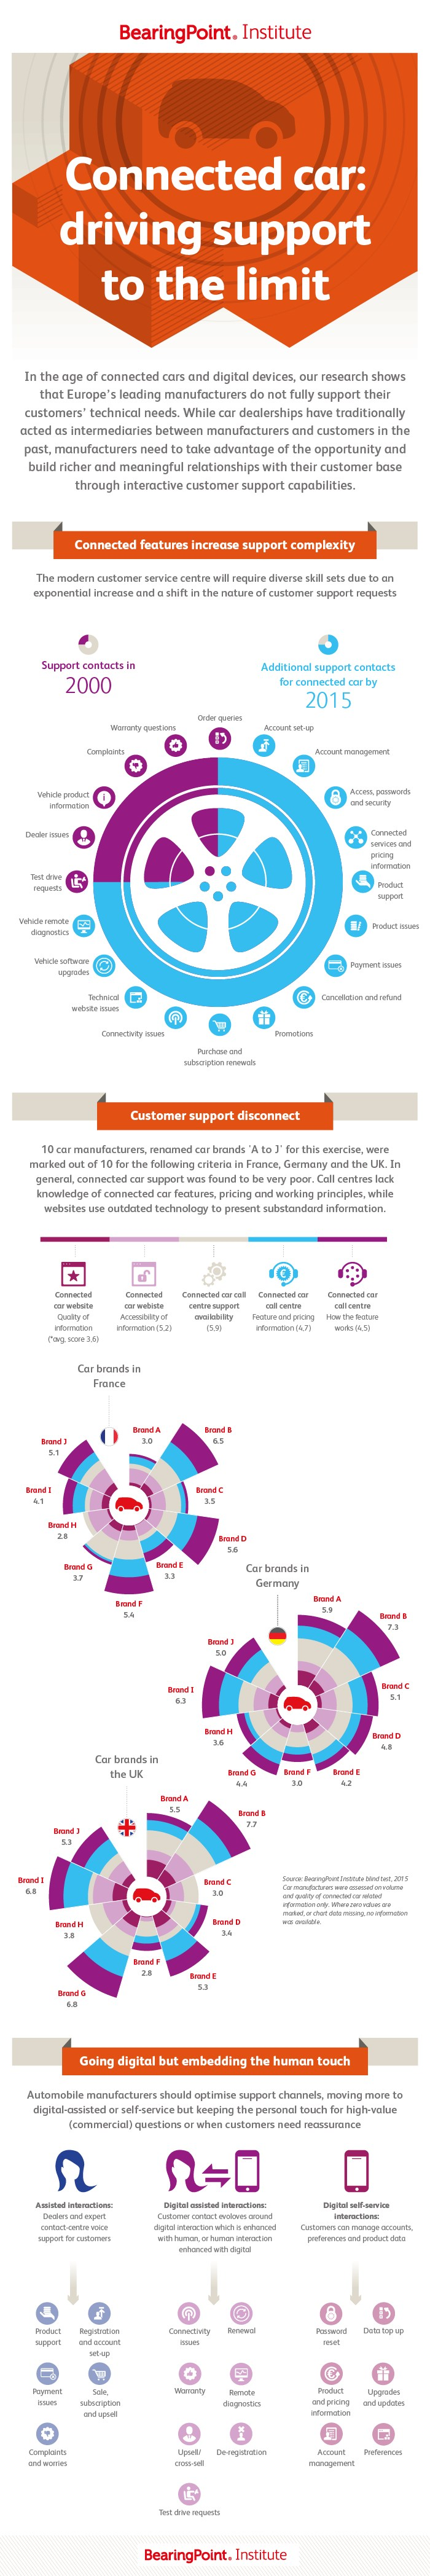 infografik bearingpoint connected cars support